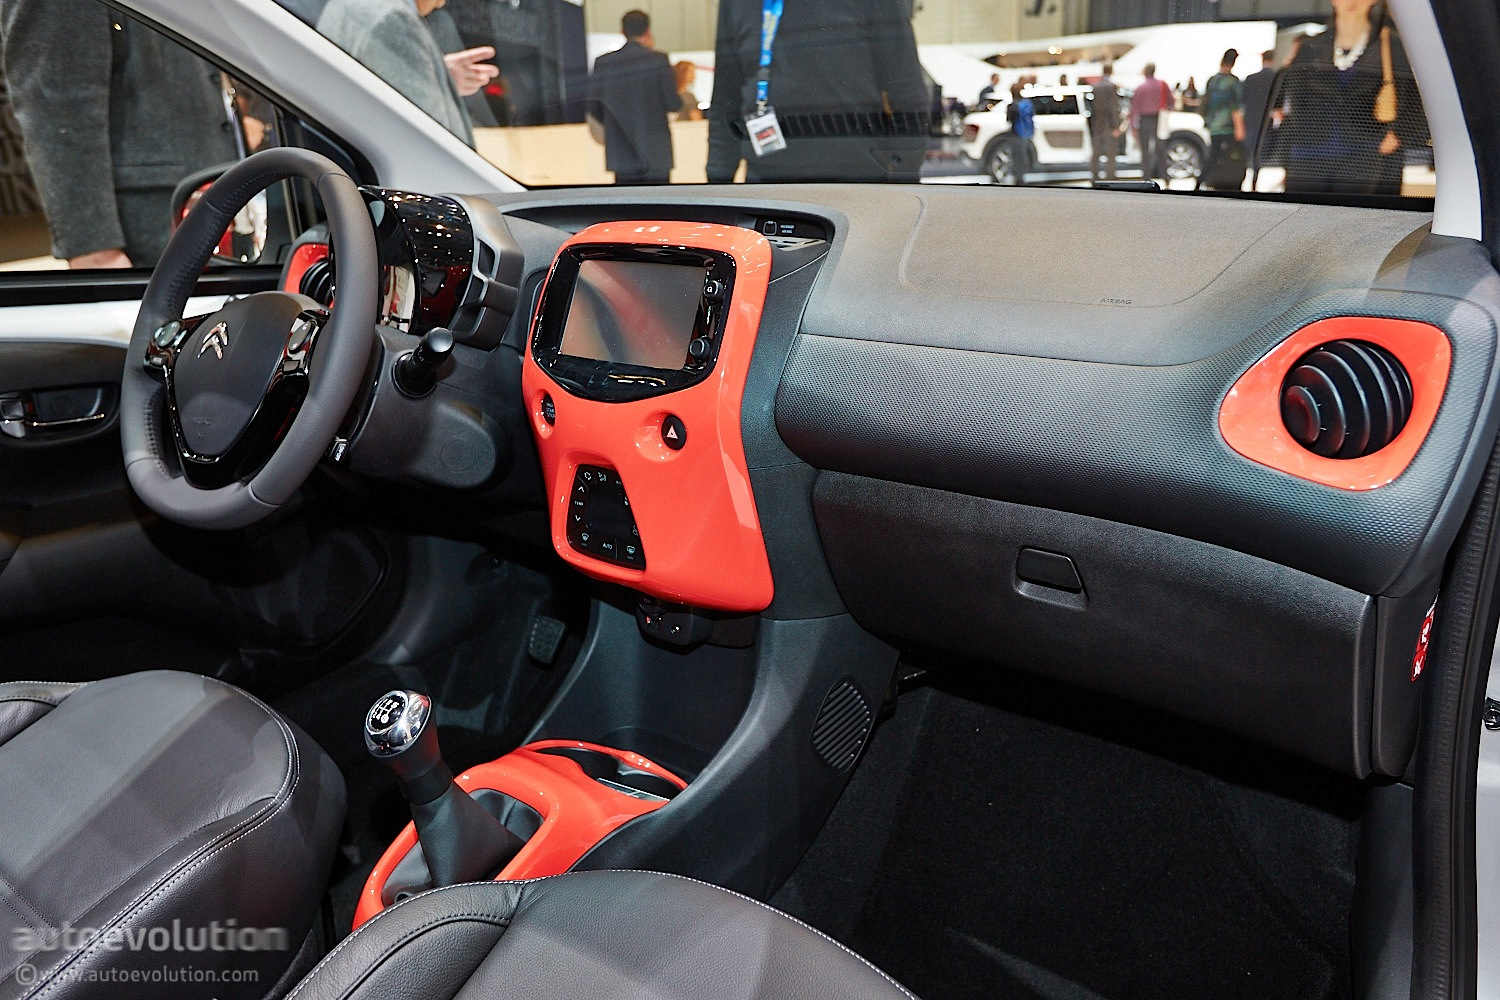 Citroen c1 marks return to form for small french cars live photos autoevolution